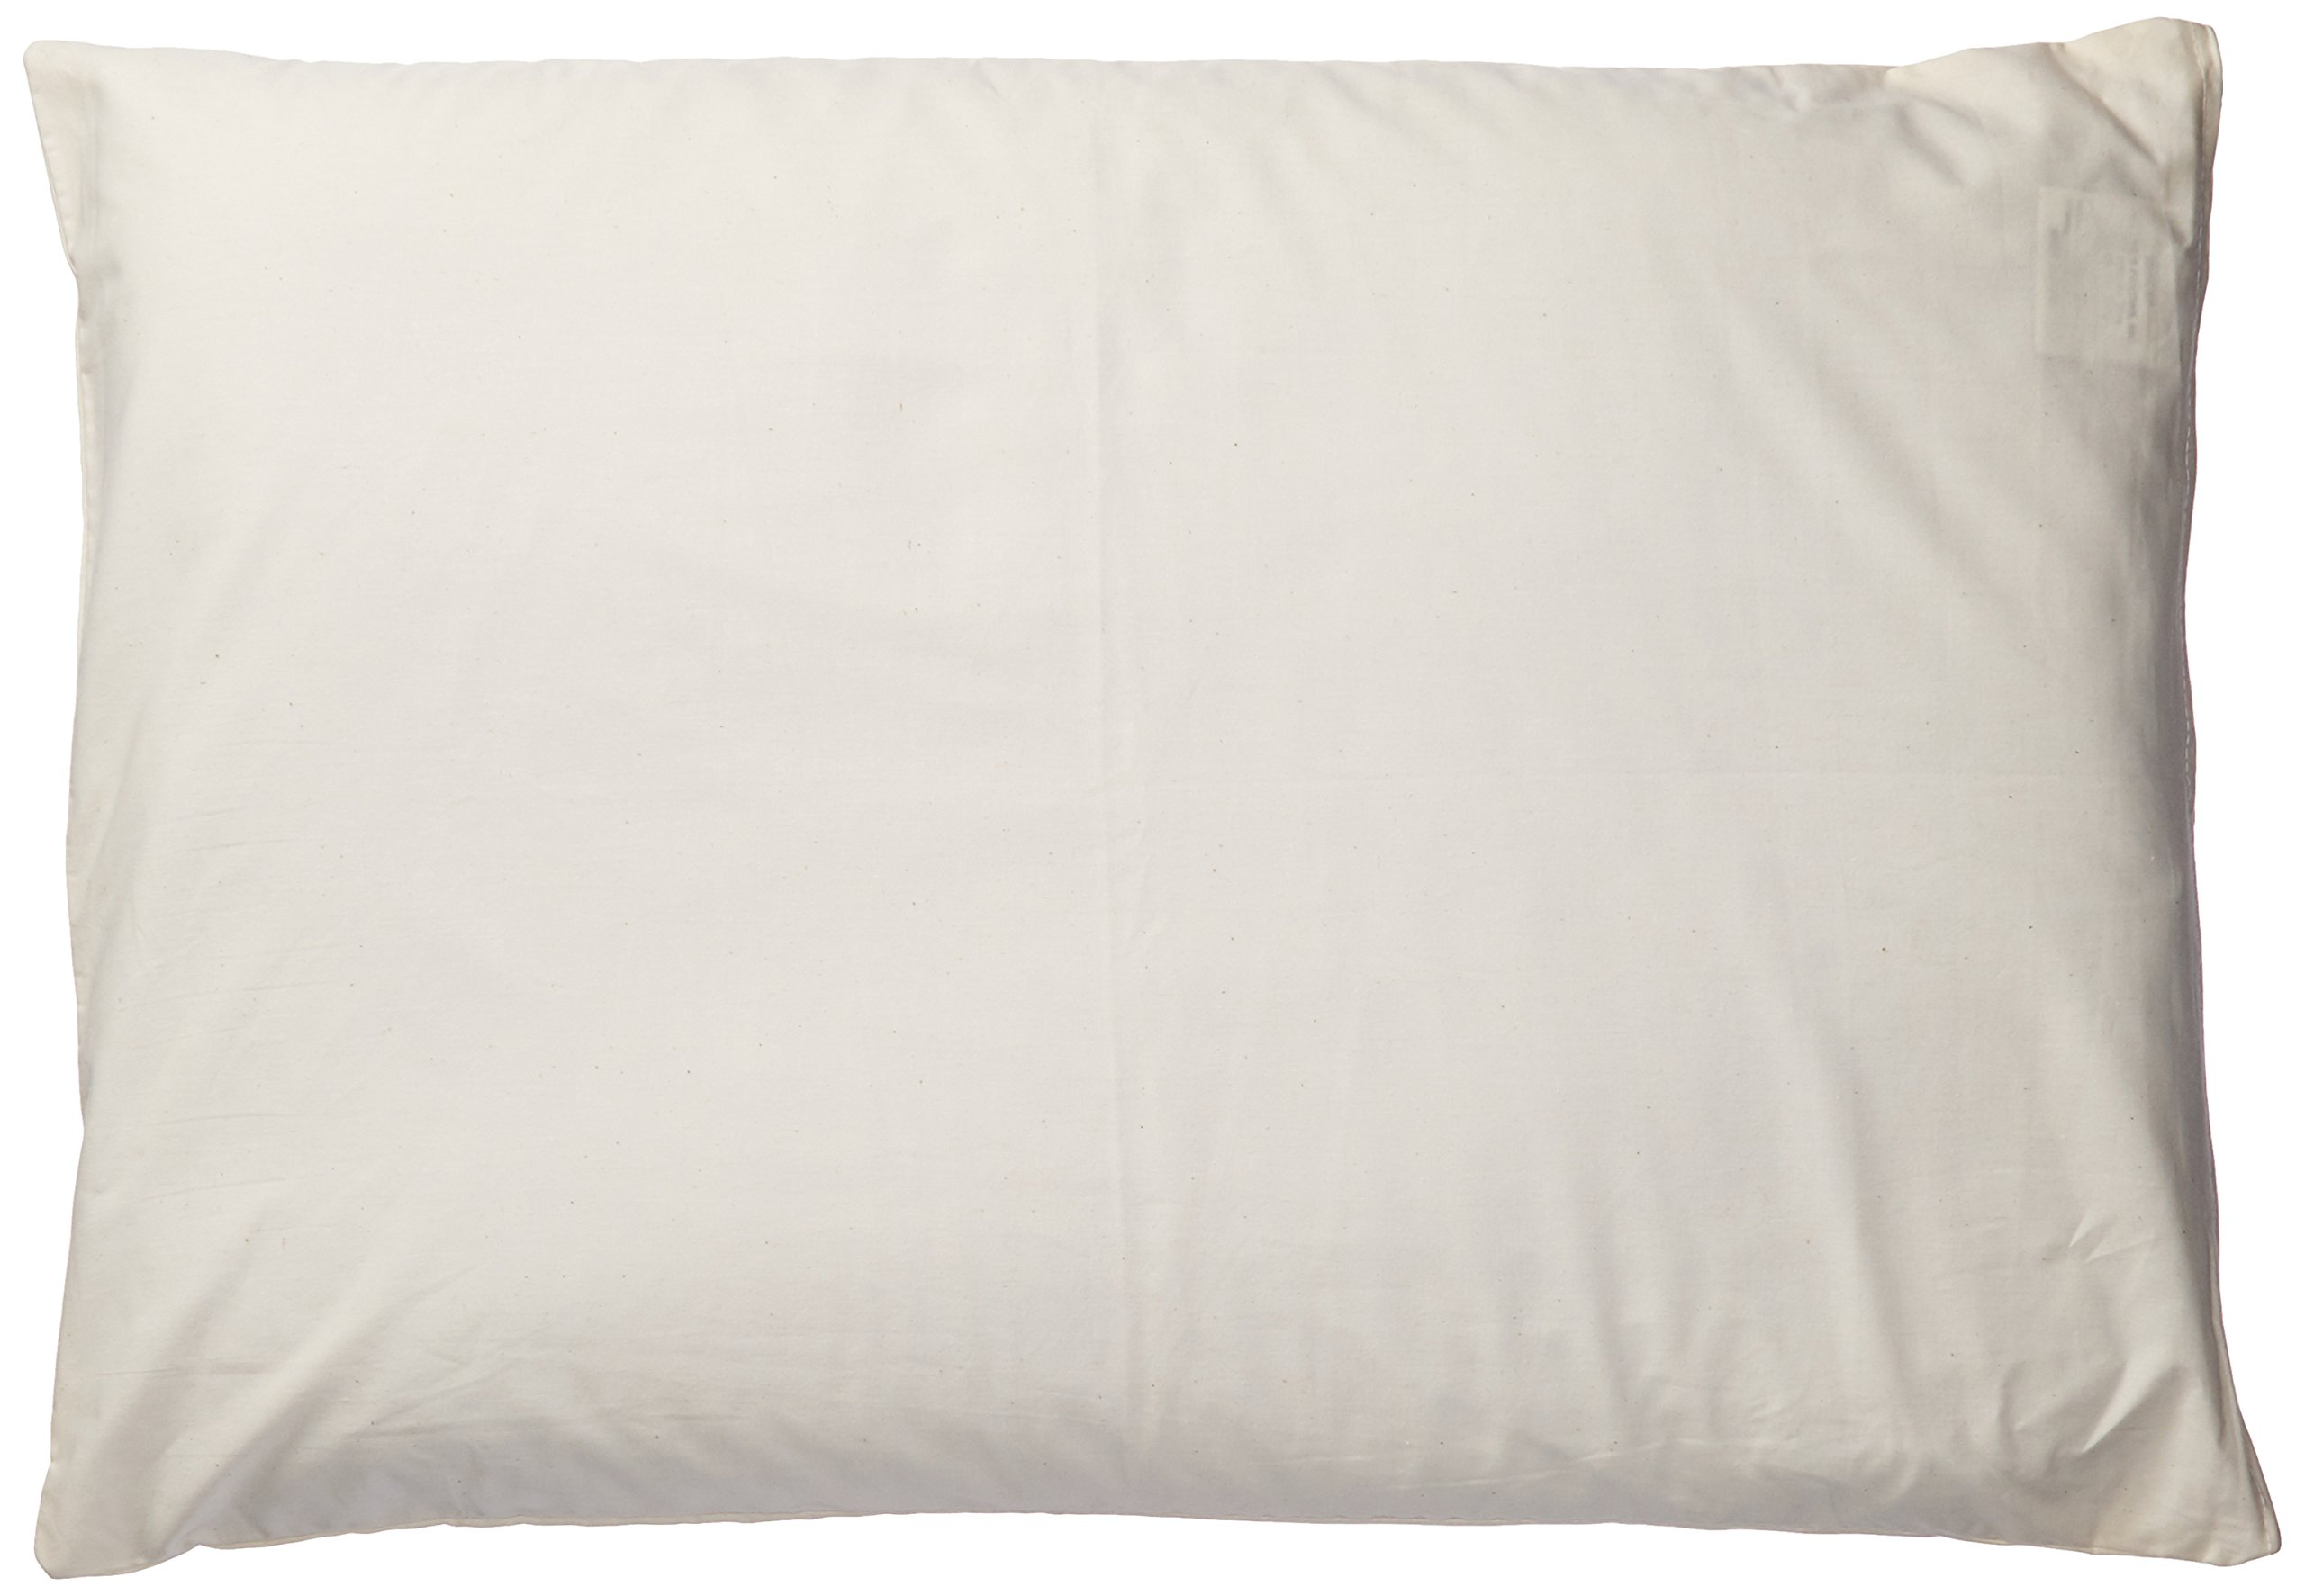 Natures Pillows Sobakawa Buckwheat Pillow With Free Pillow Protective Cover, 19'' x 29'' by Natures Pillows